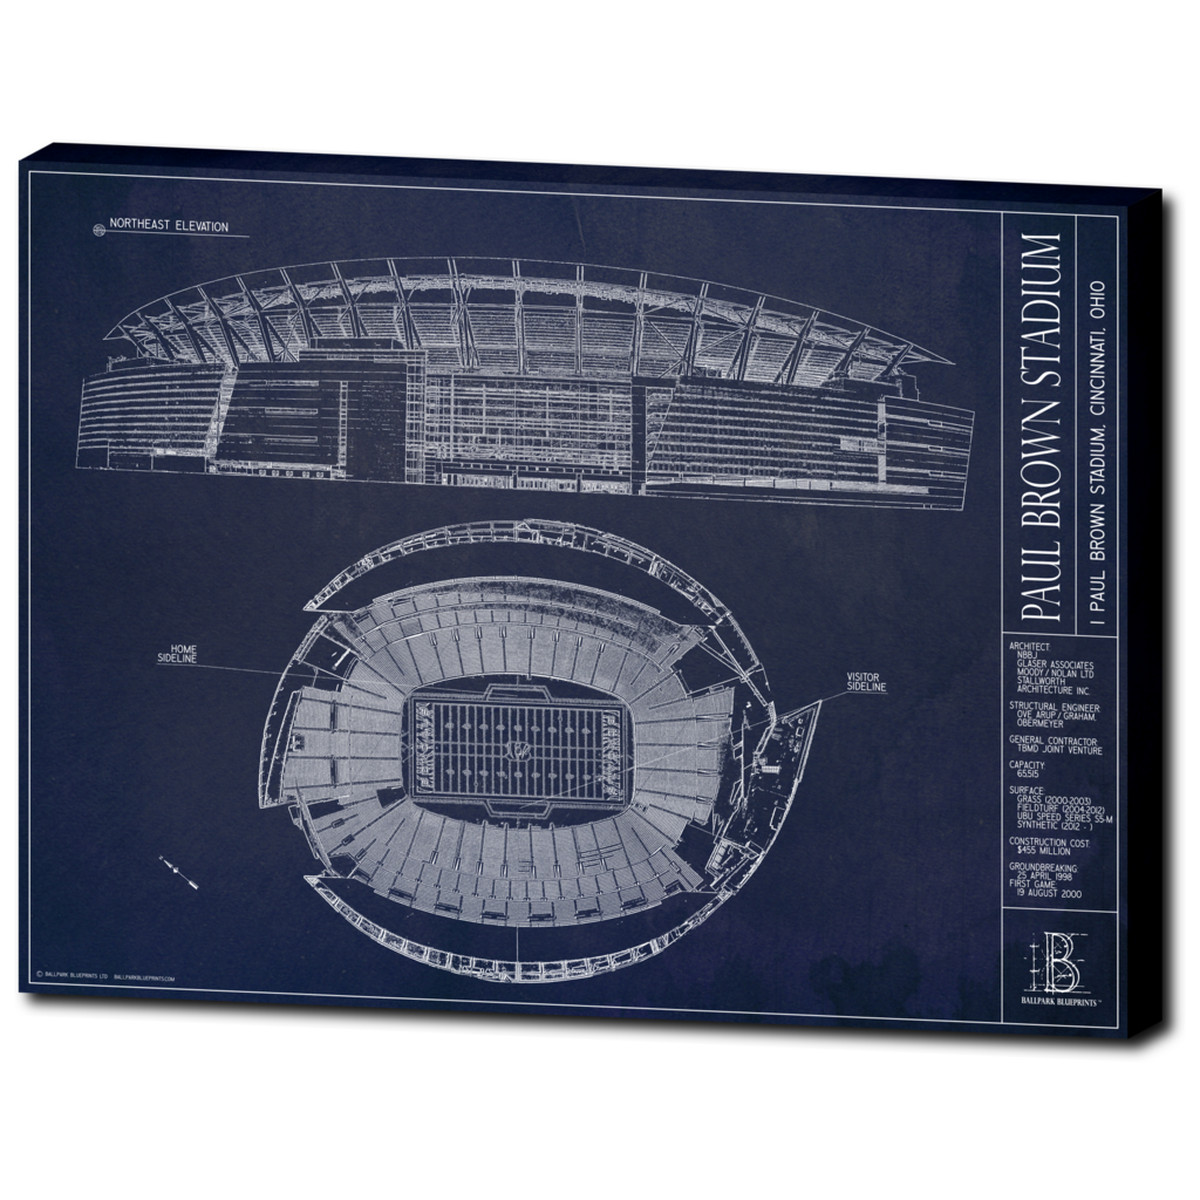 Ballpark blueprints releases paul brown stadium blueprints cincy canvas prints mounted in a floating frame are another option from the company and a great gift option malvernweather Gallery